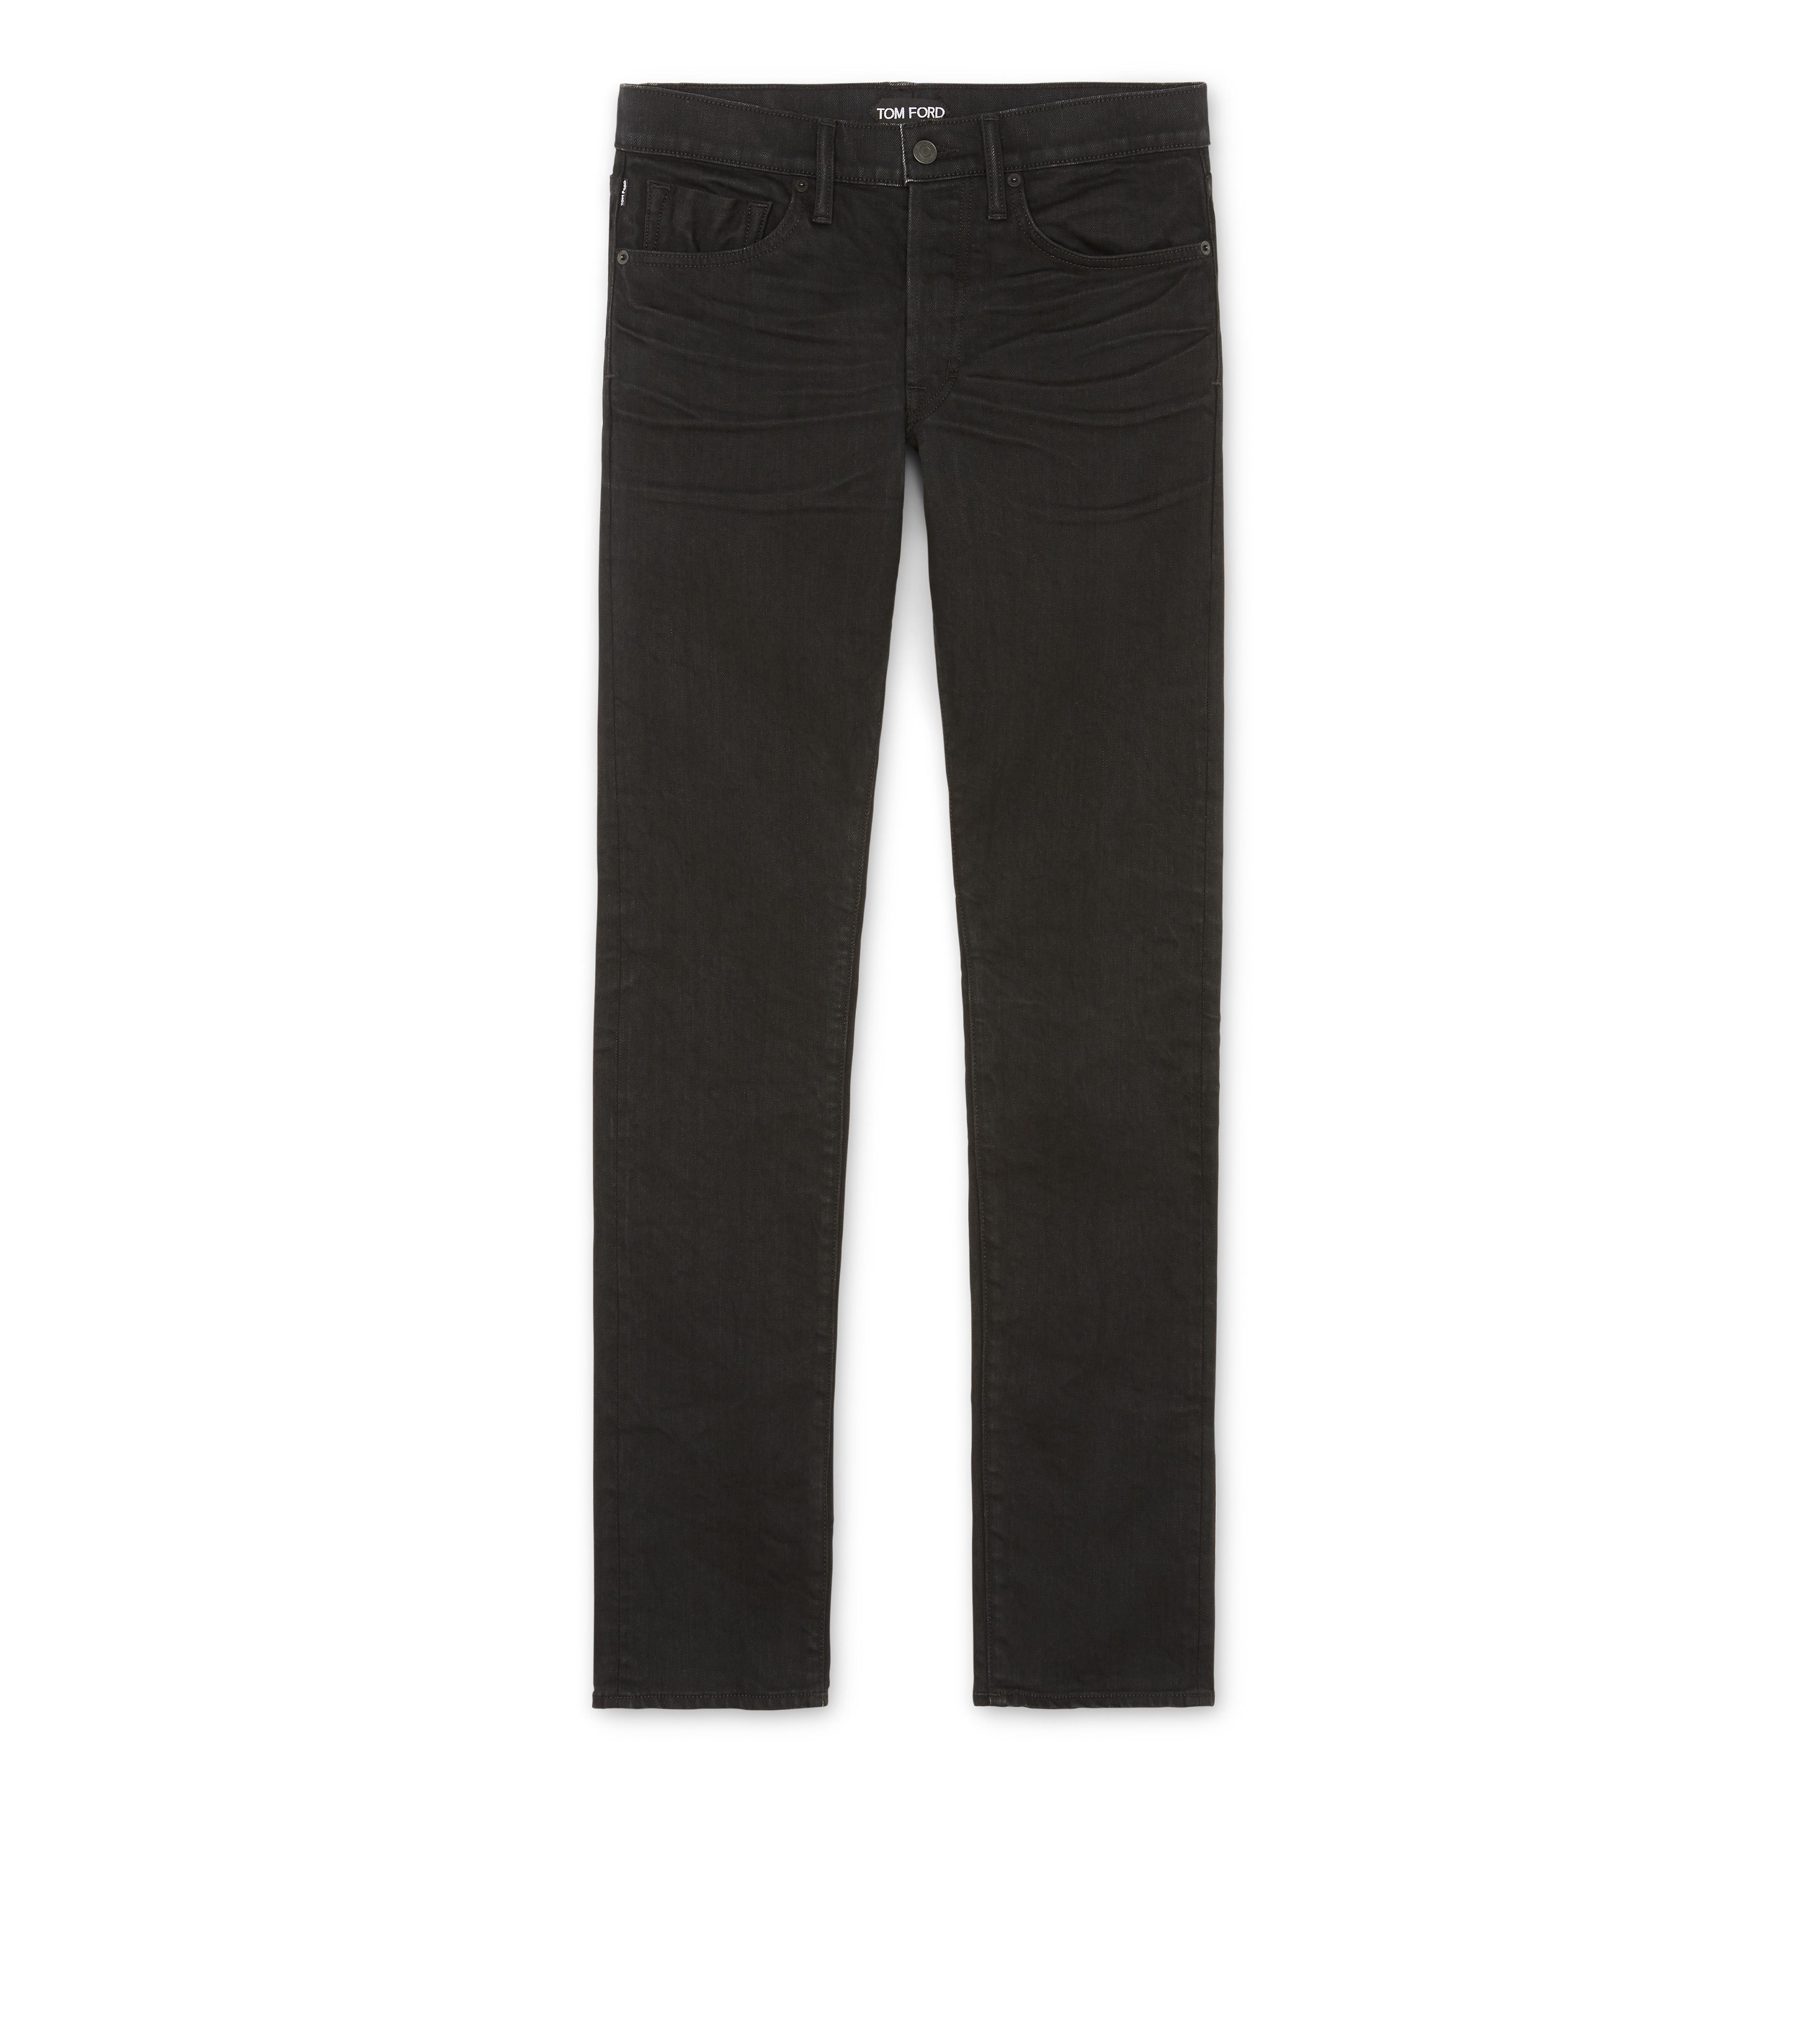 SLIM FIT BLACK JEANS A thumbnail